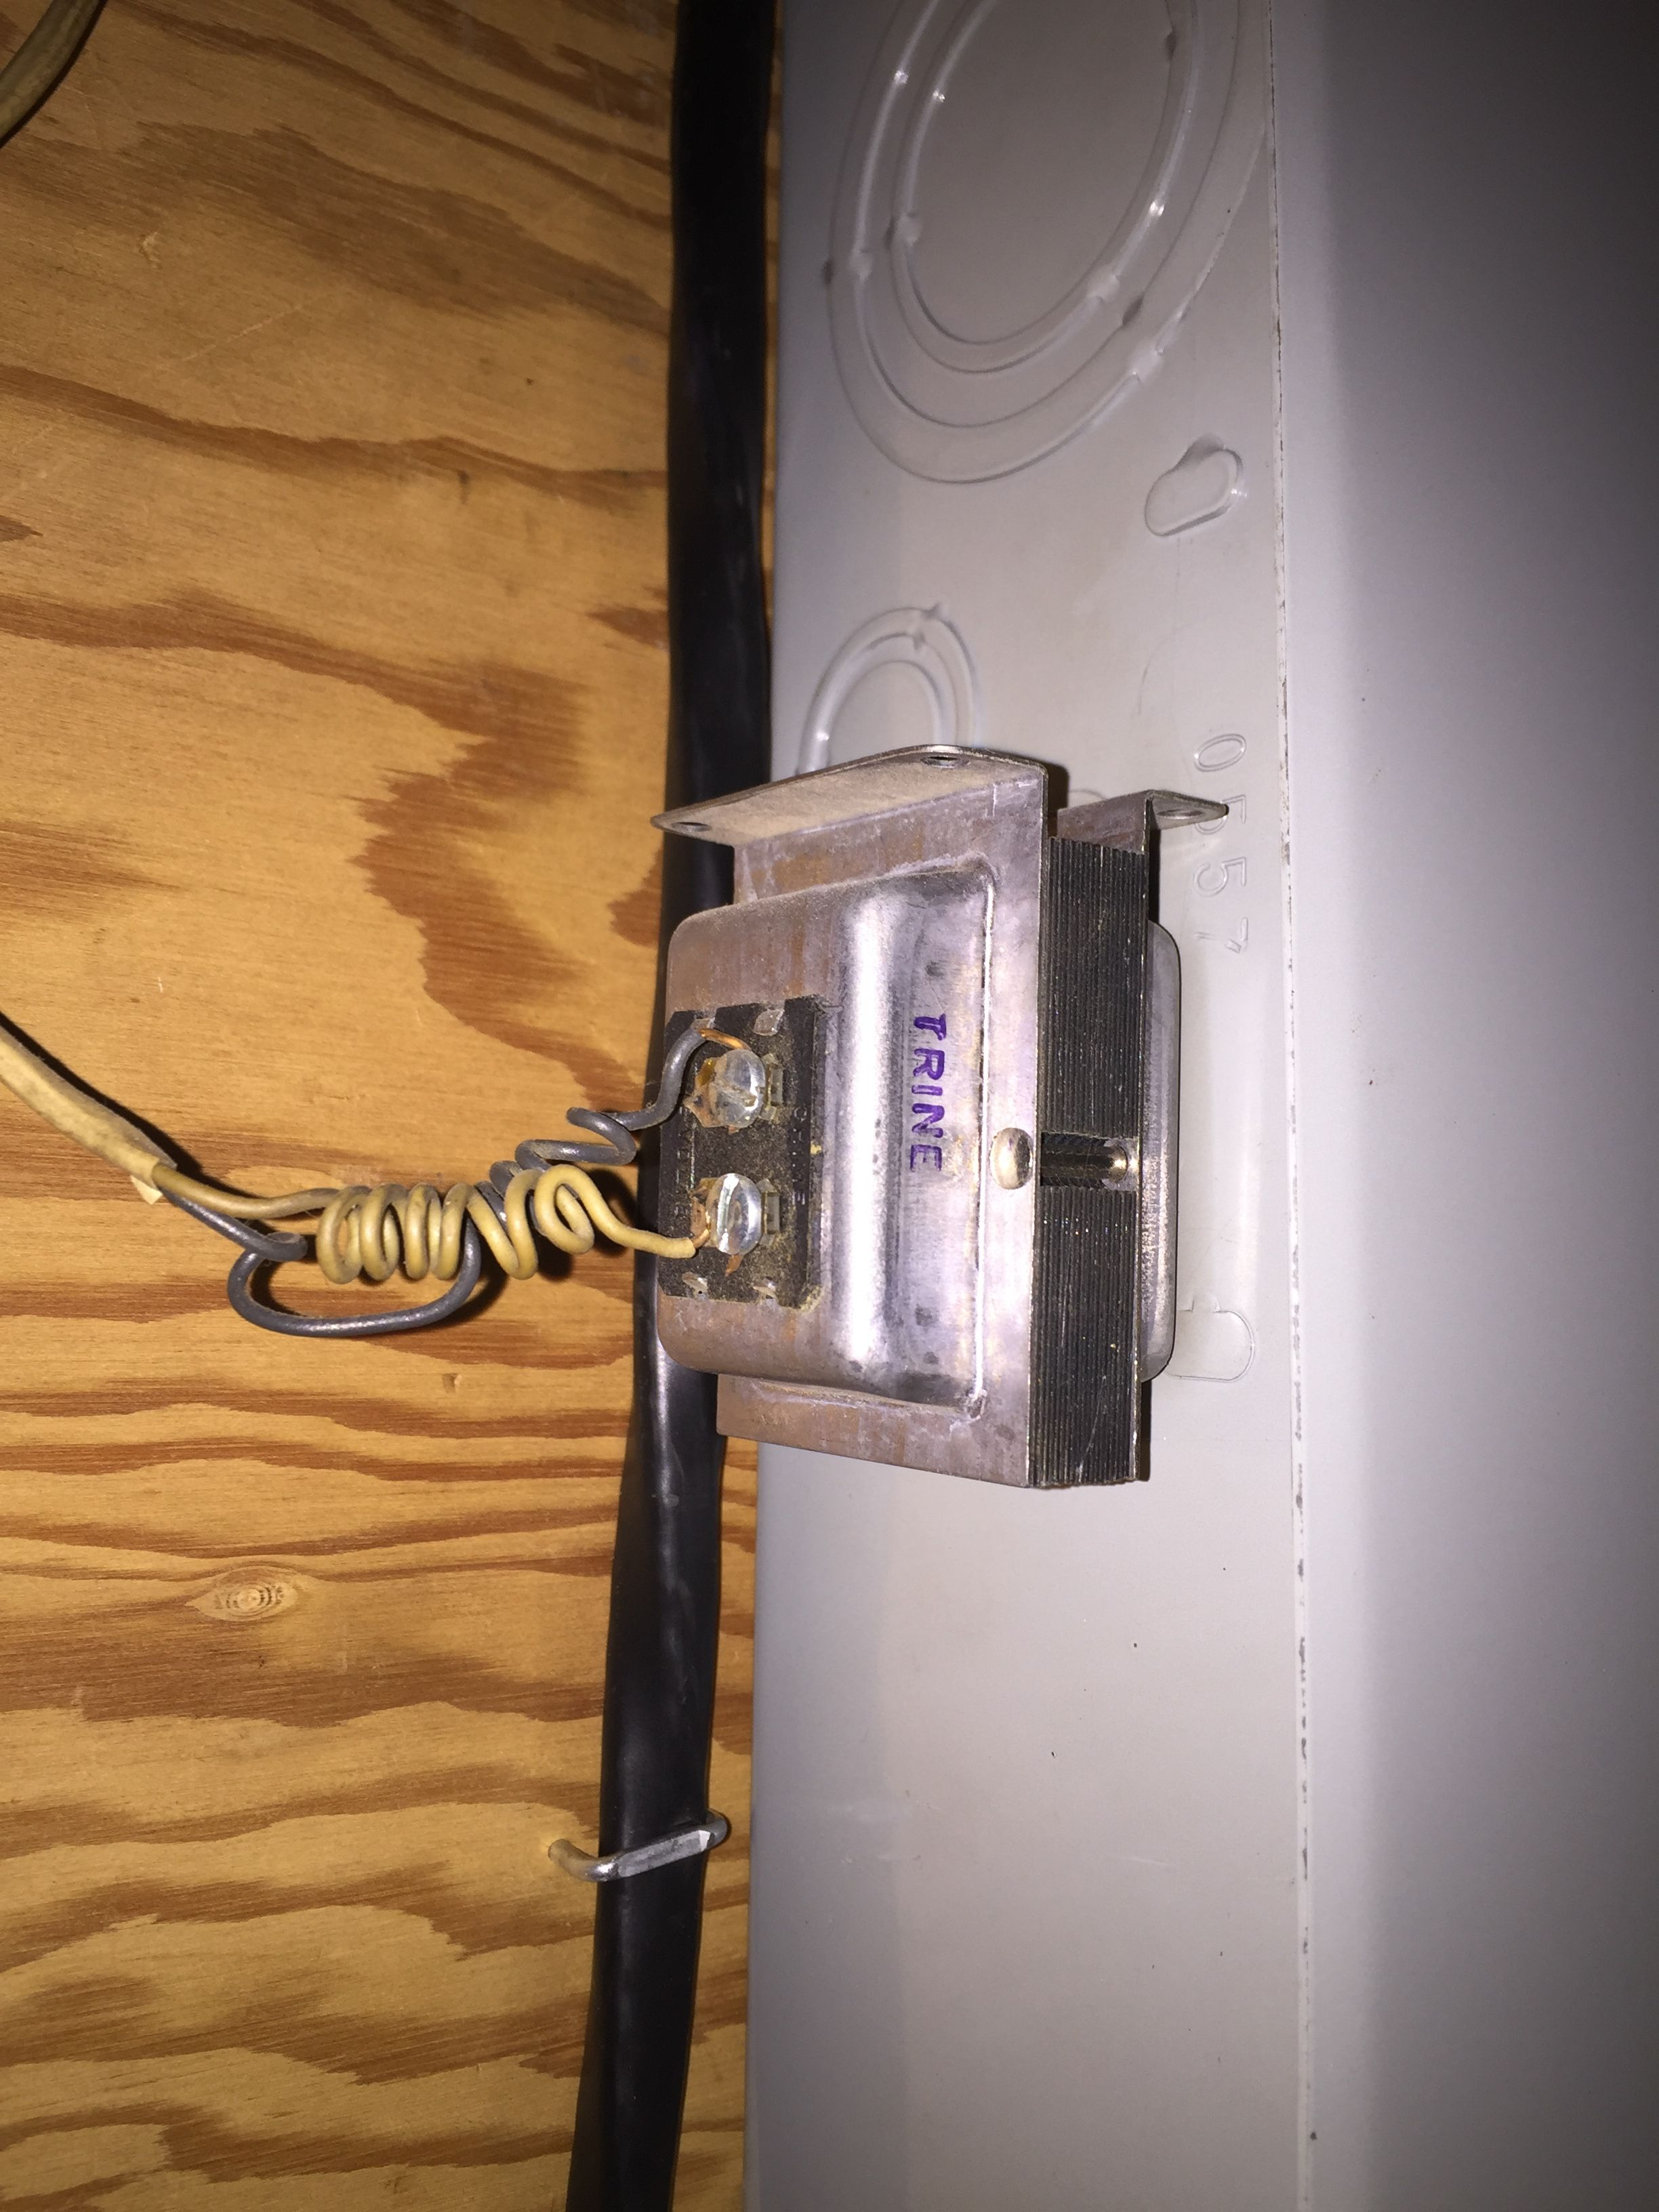 Here is the transformer from my panel ... & Electrical] Humming from Main Electrical Panel - Home Improvement ... Aboutintivar.Com